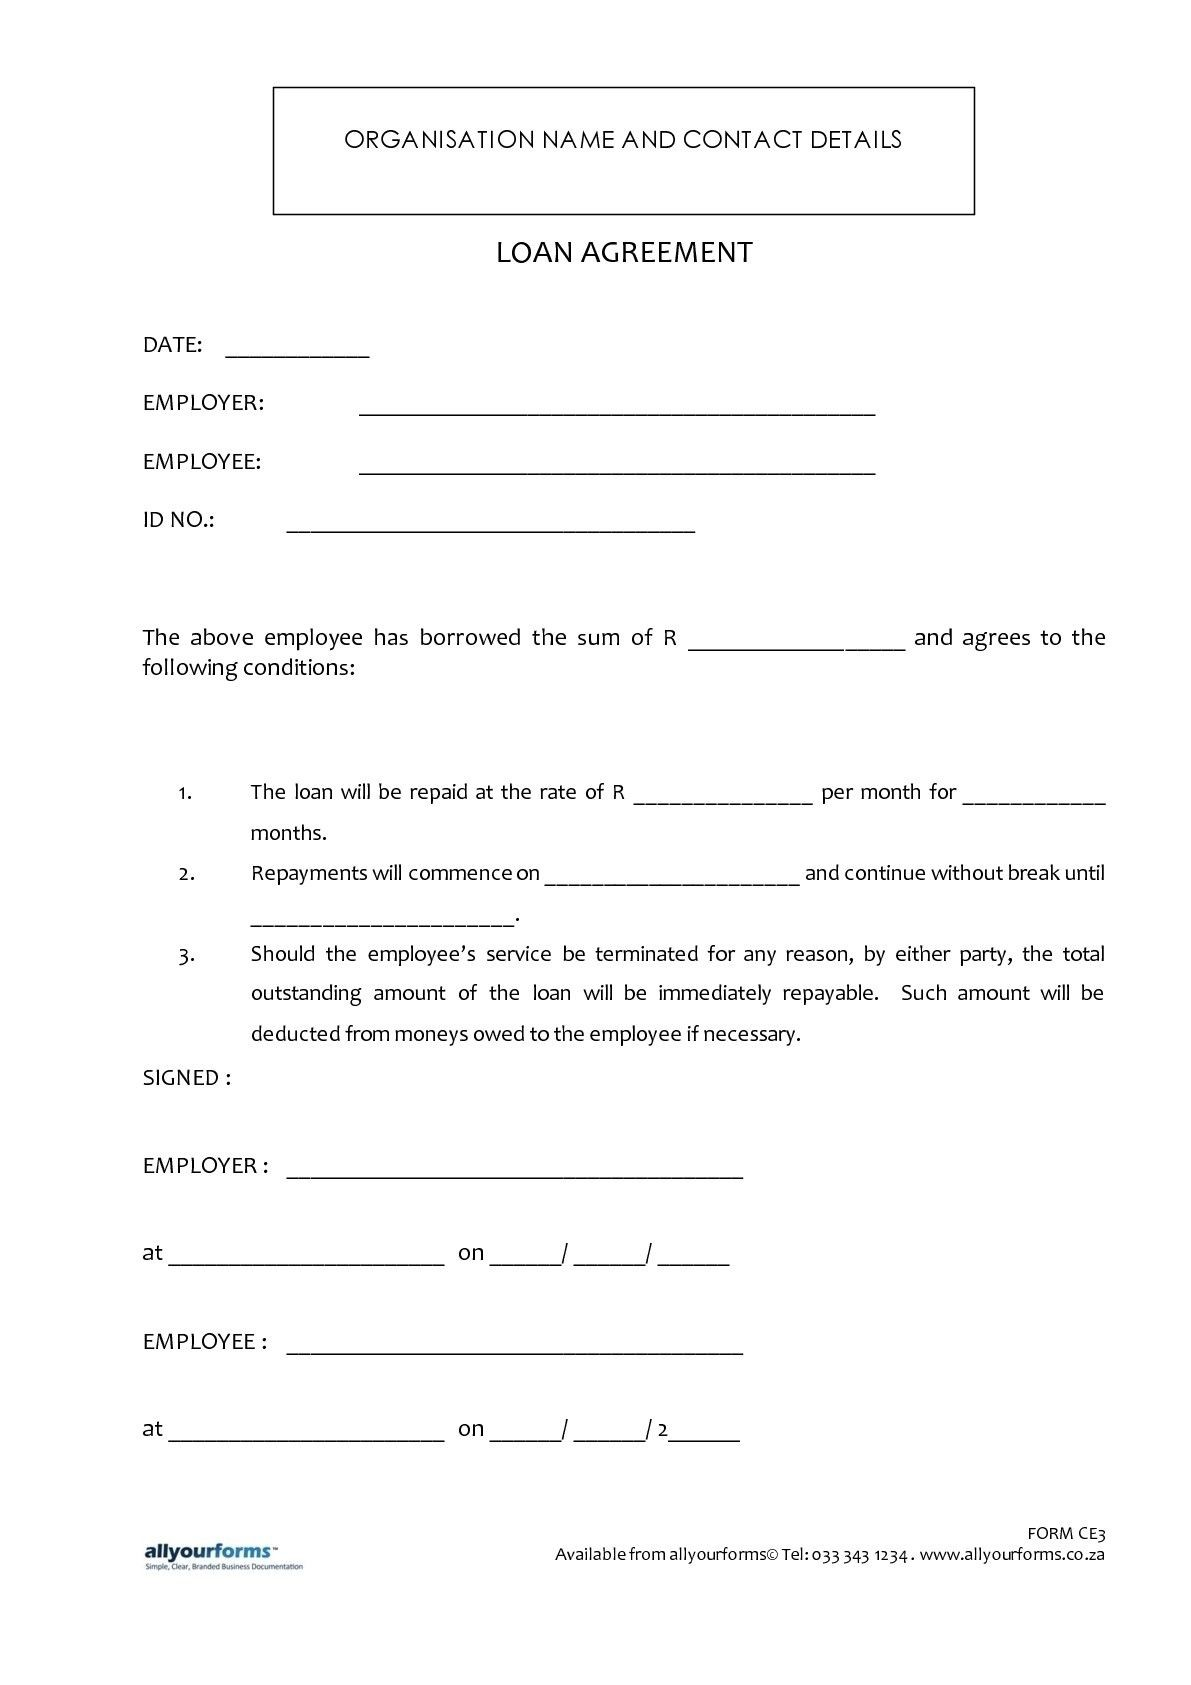 Personal Loan Agreement Template Malaysia